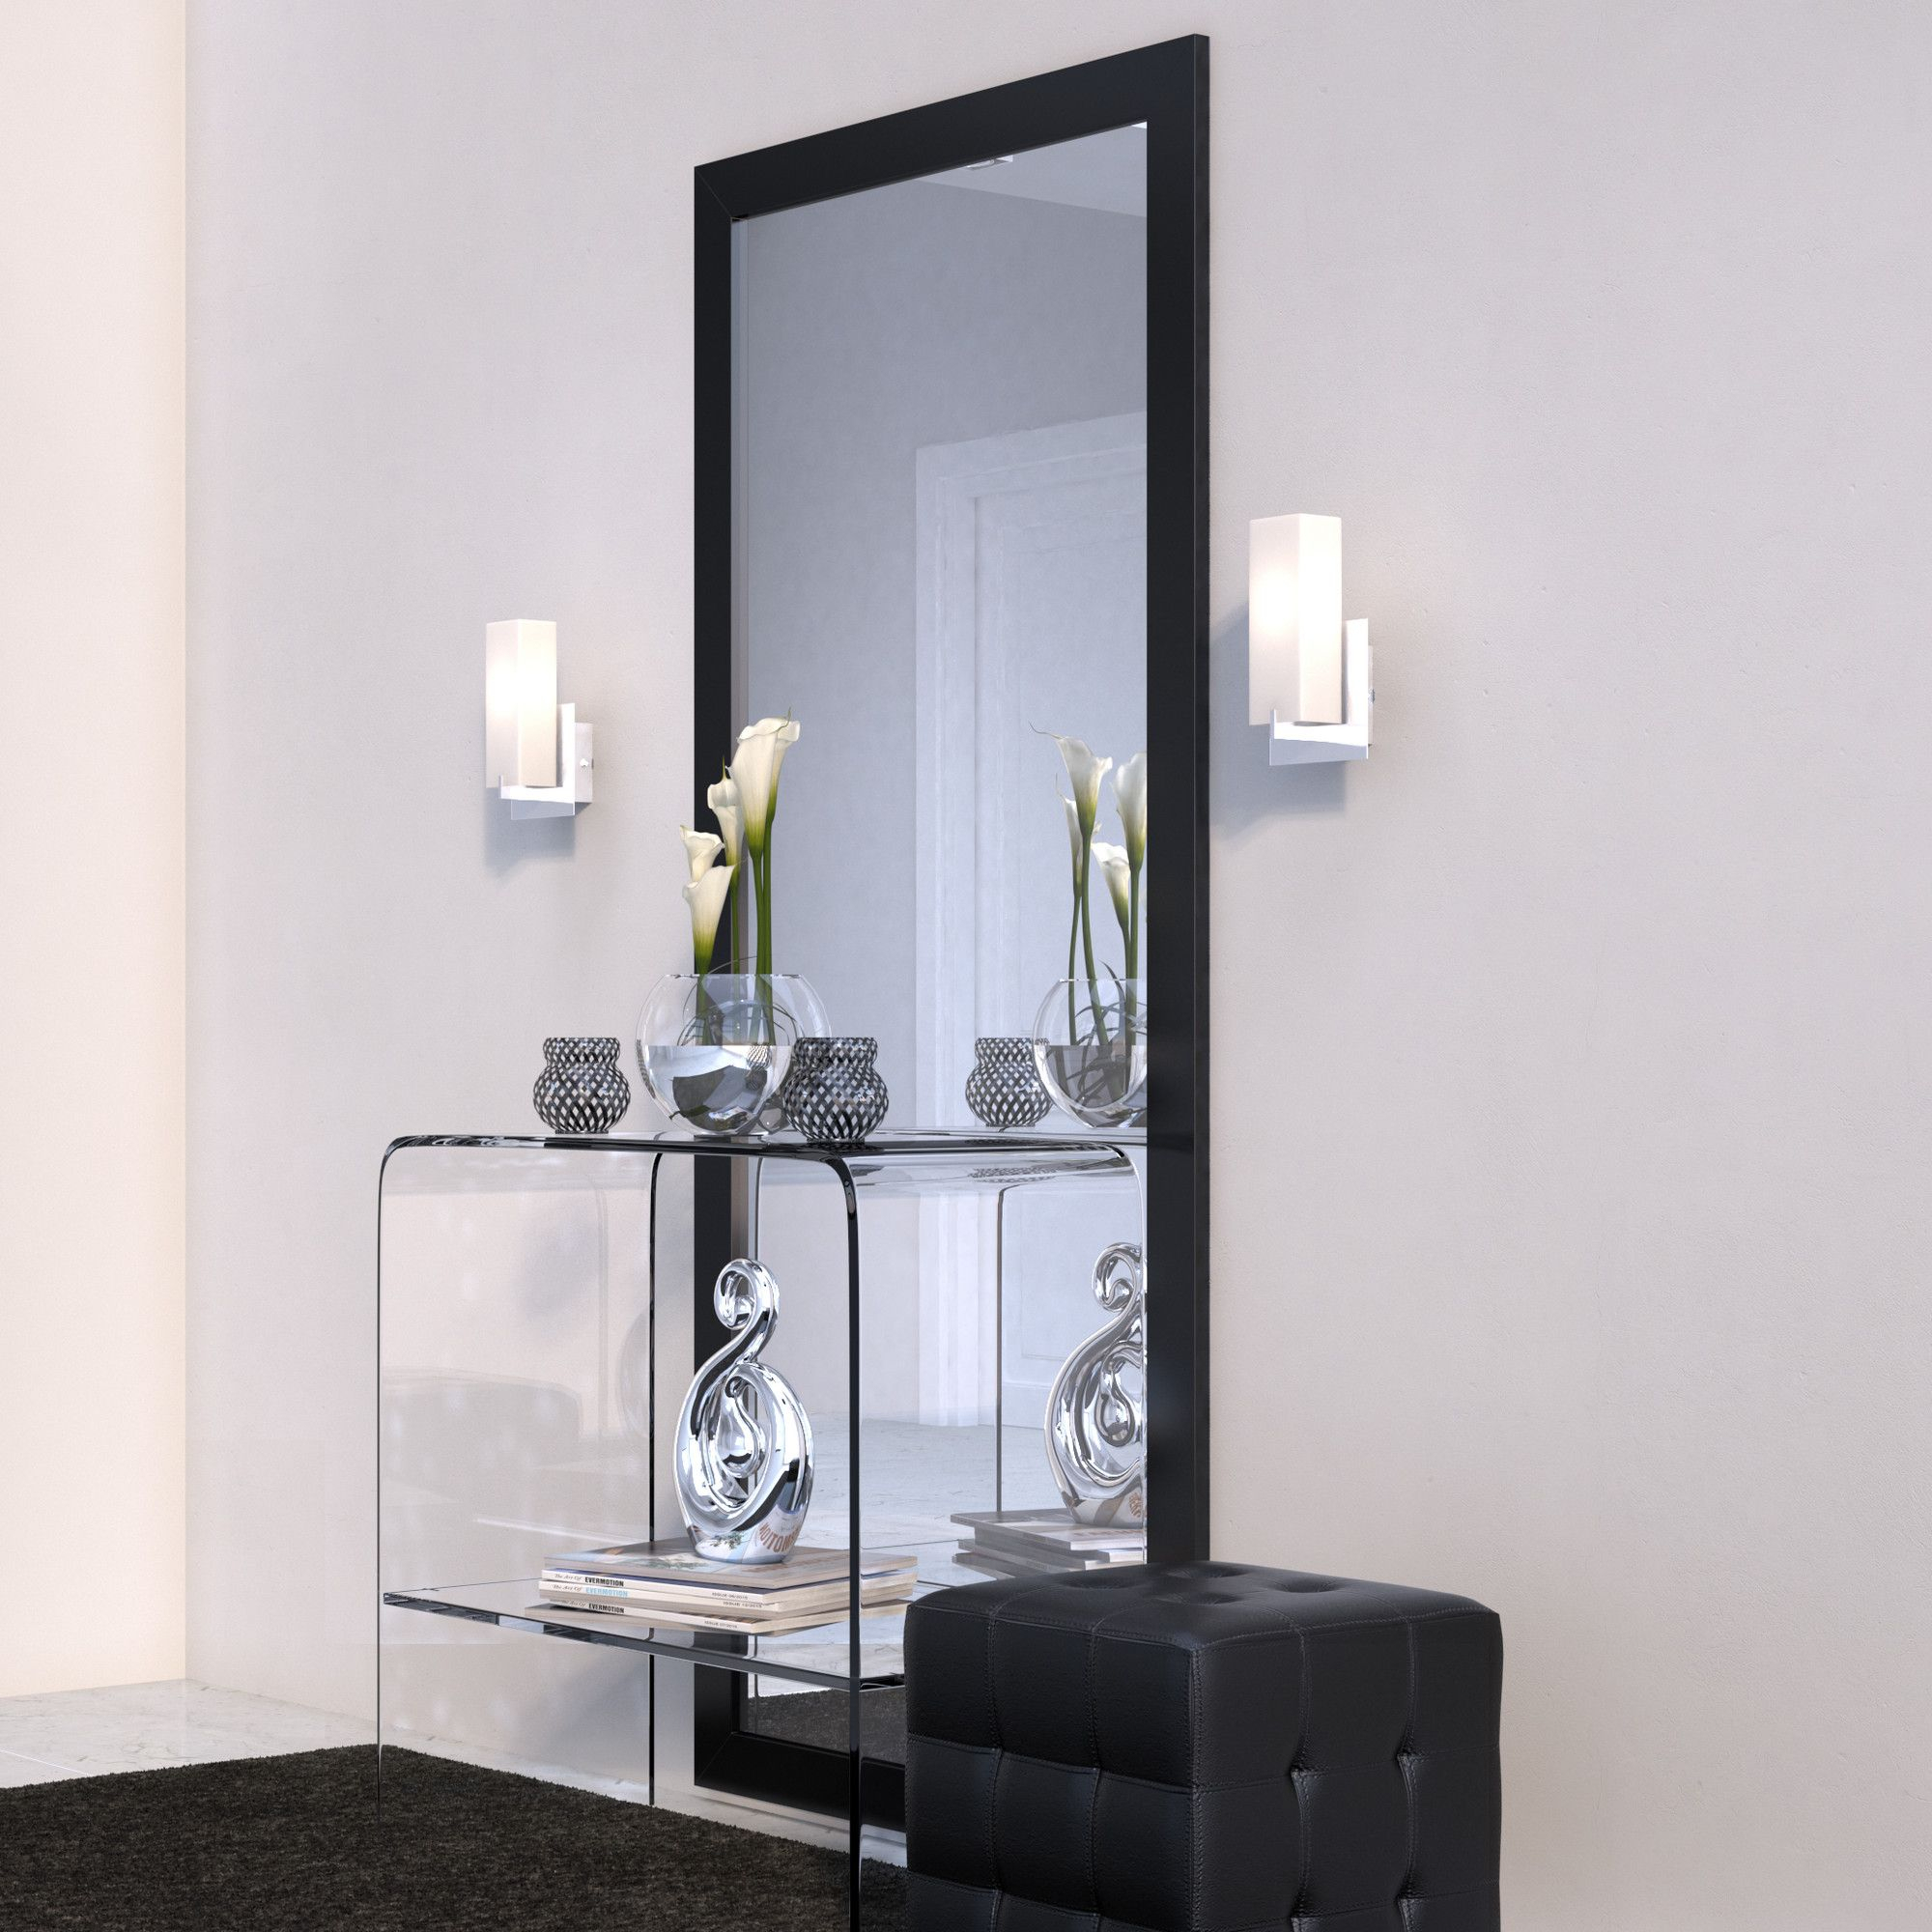 Jameson Modern & Contemporary Full Length Mirror | Products Inside Jameson Modern & Contemporary Full Length Mirrors (View 10 of 30)